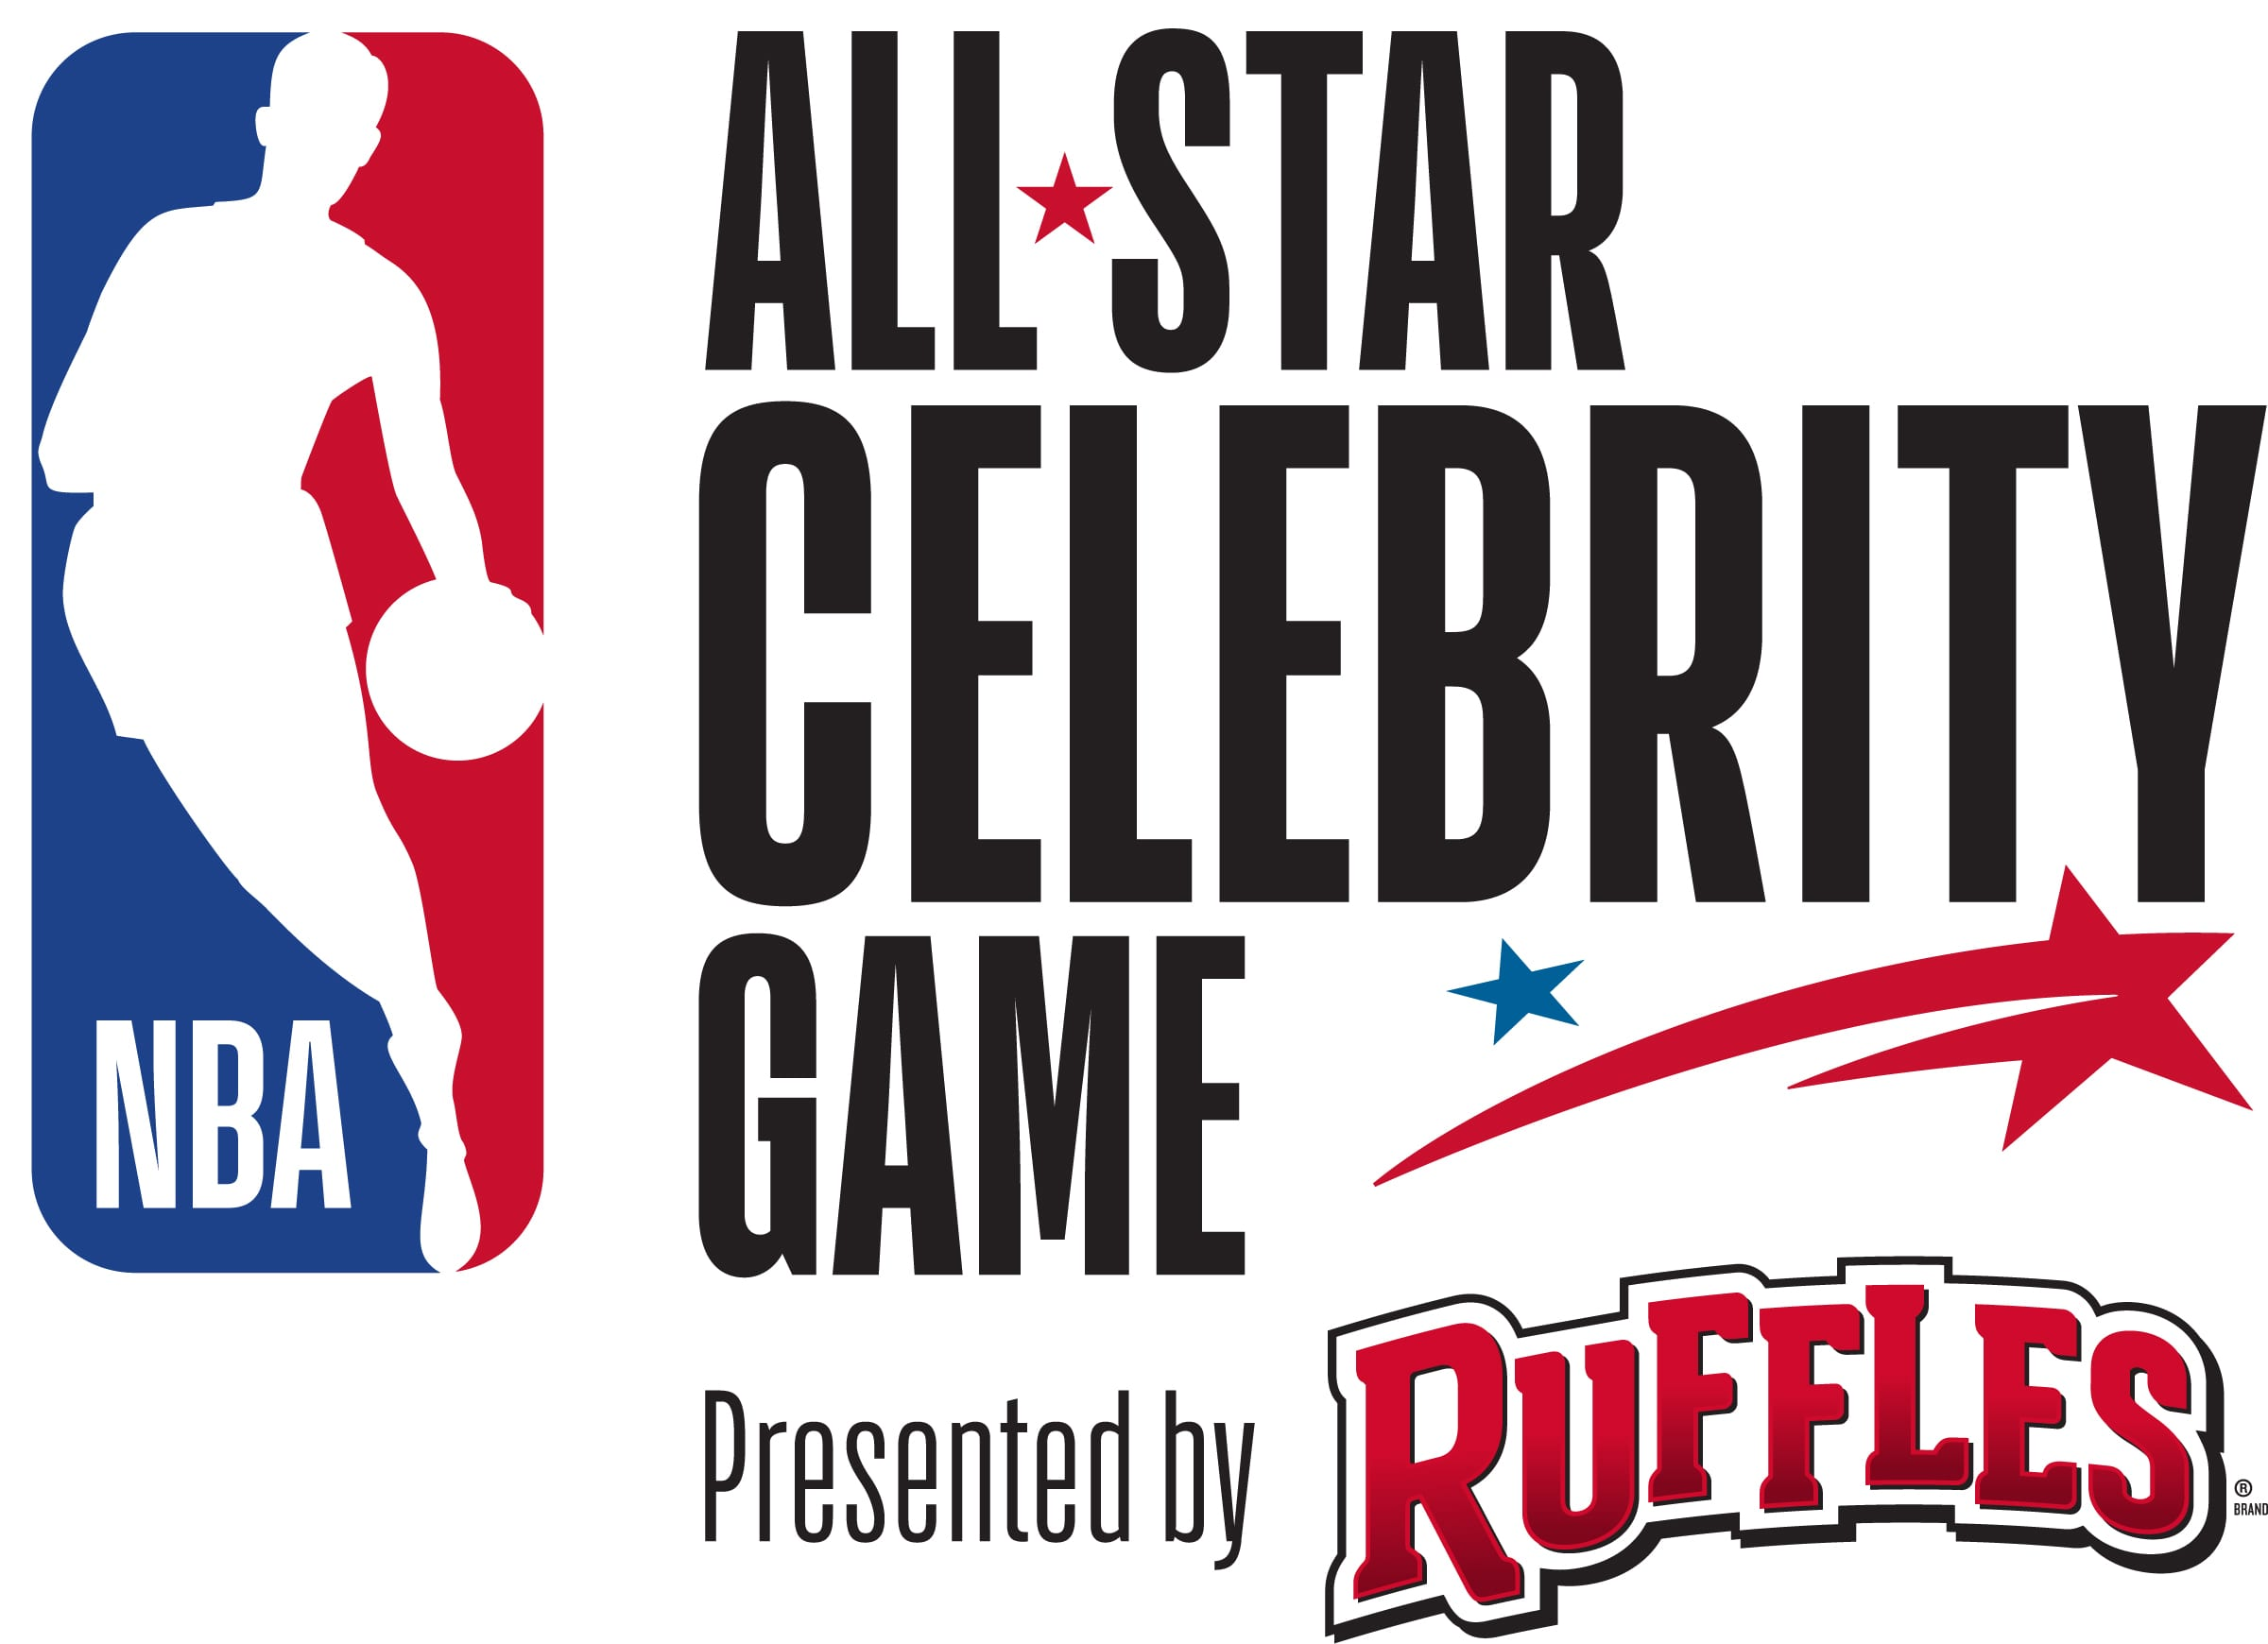 AS Celebrity Game